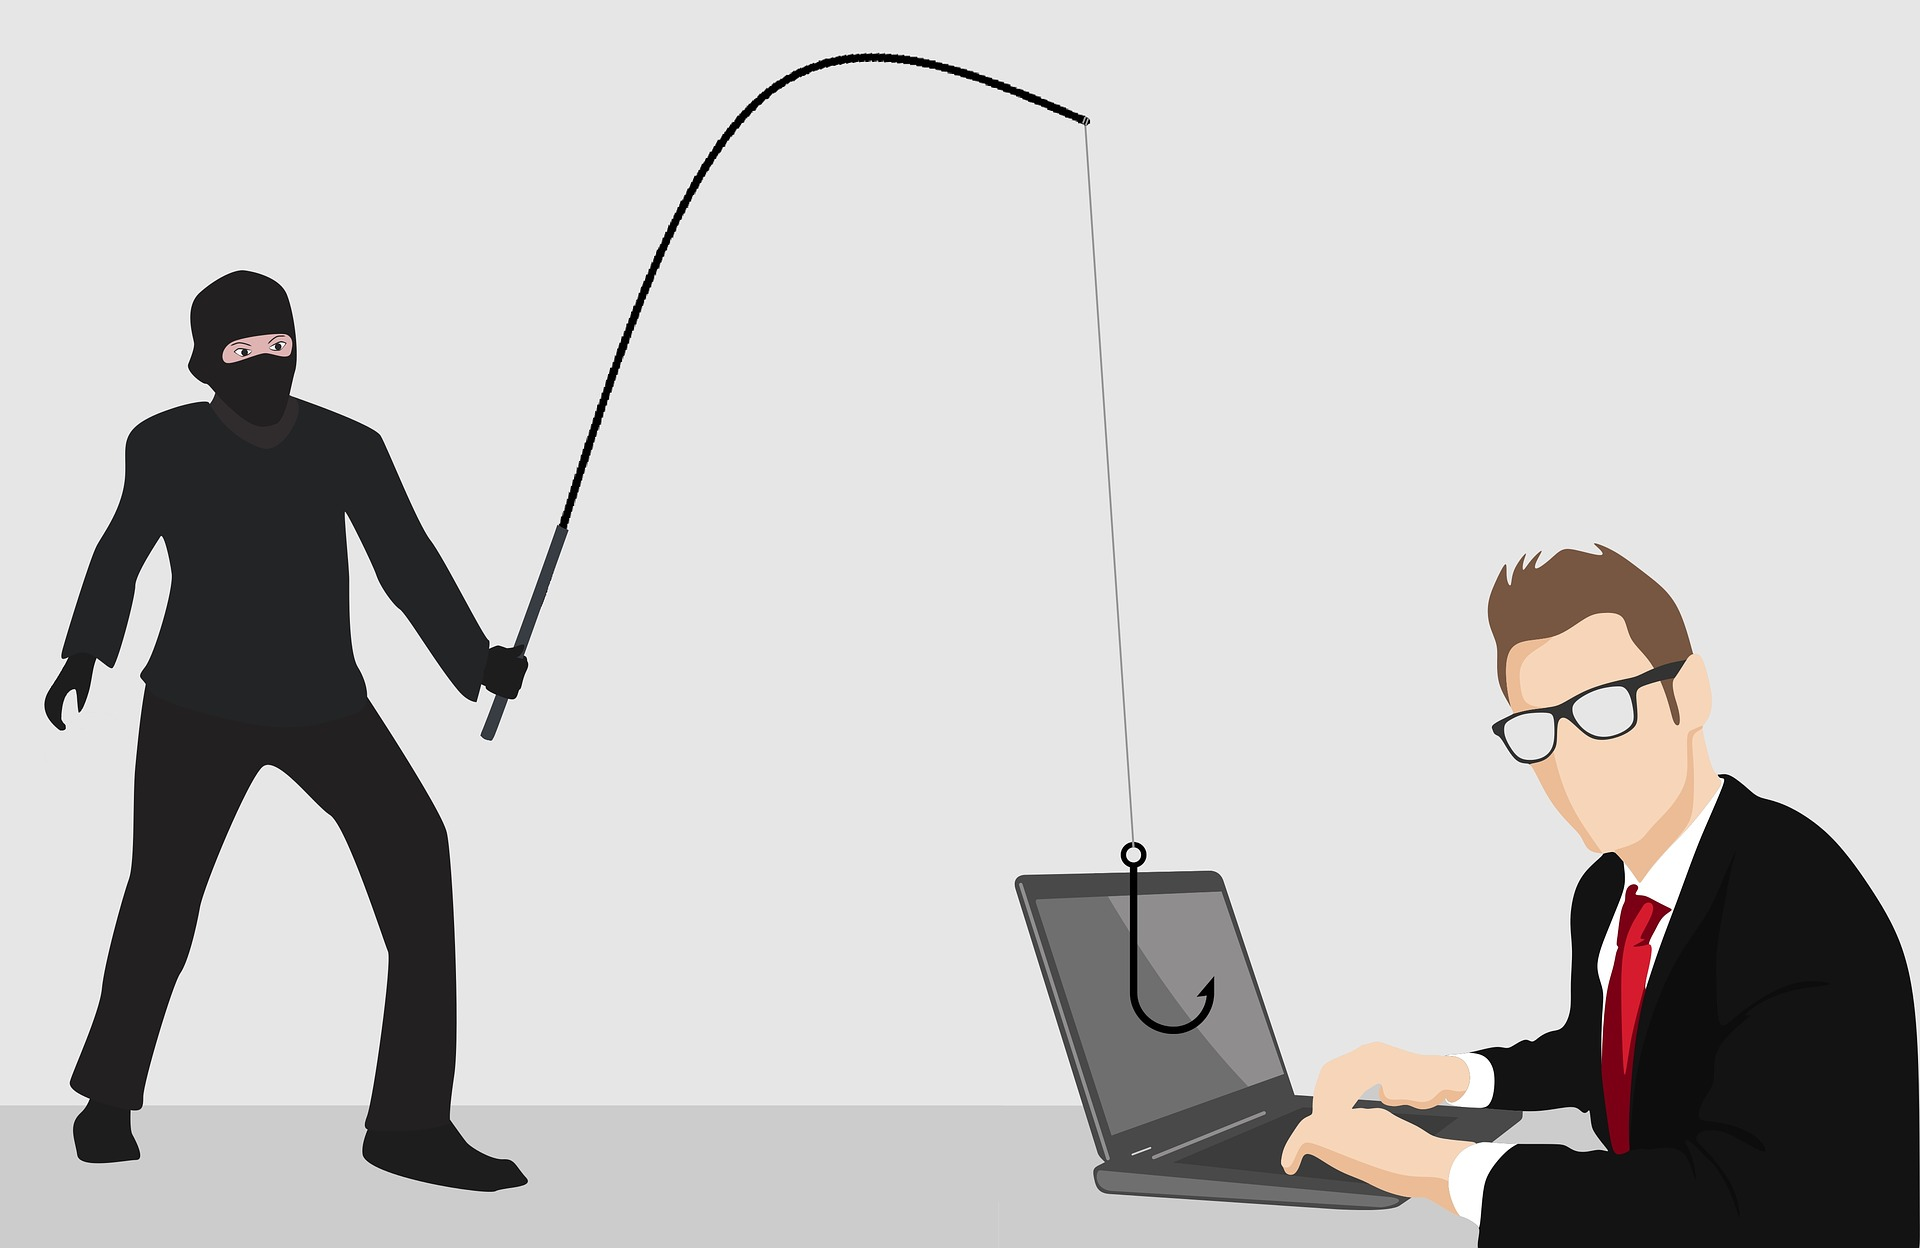 Your Personal identification Number is 9371 - Phishing Scam